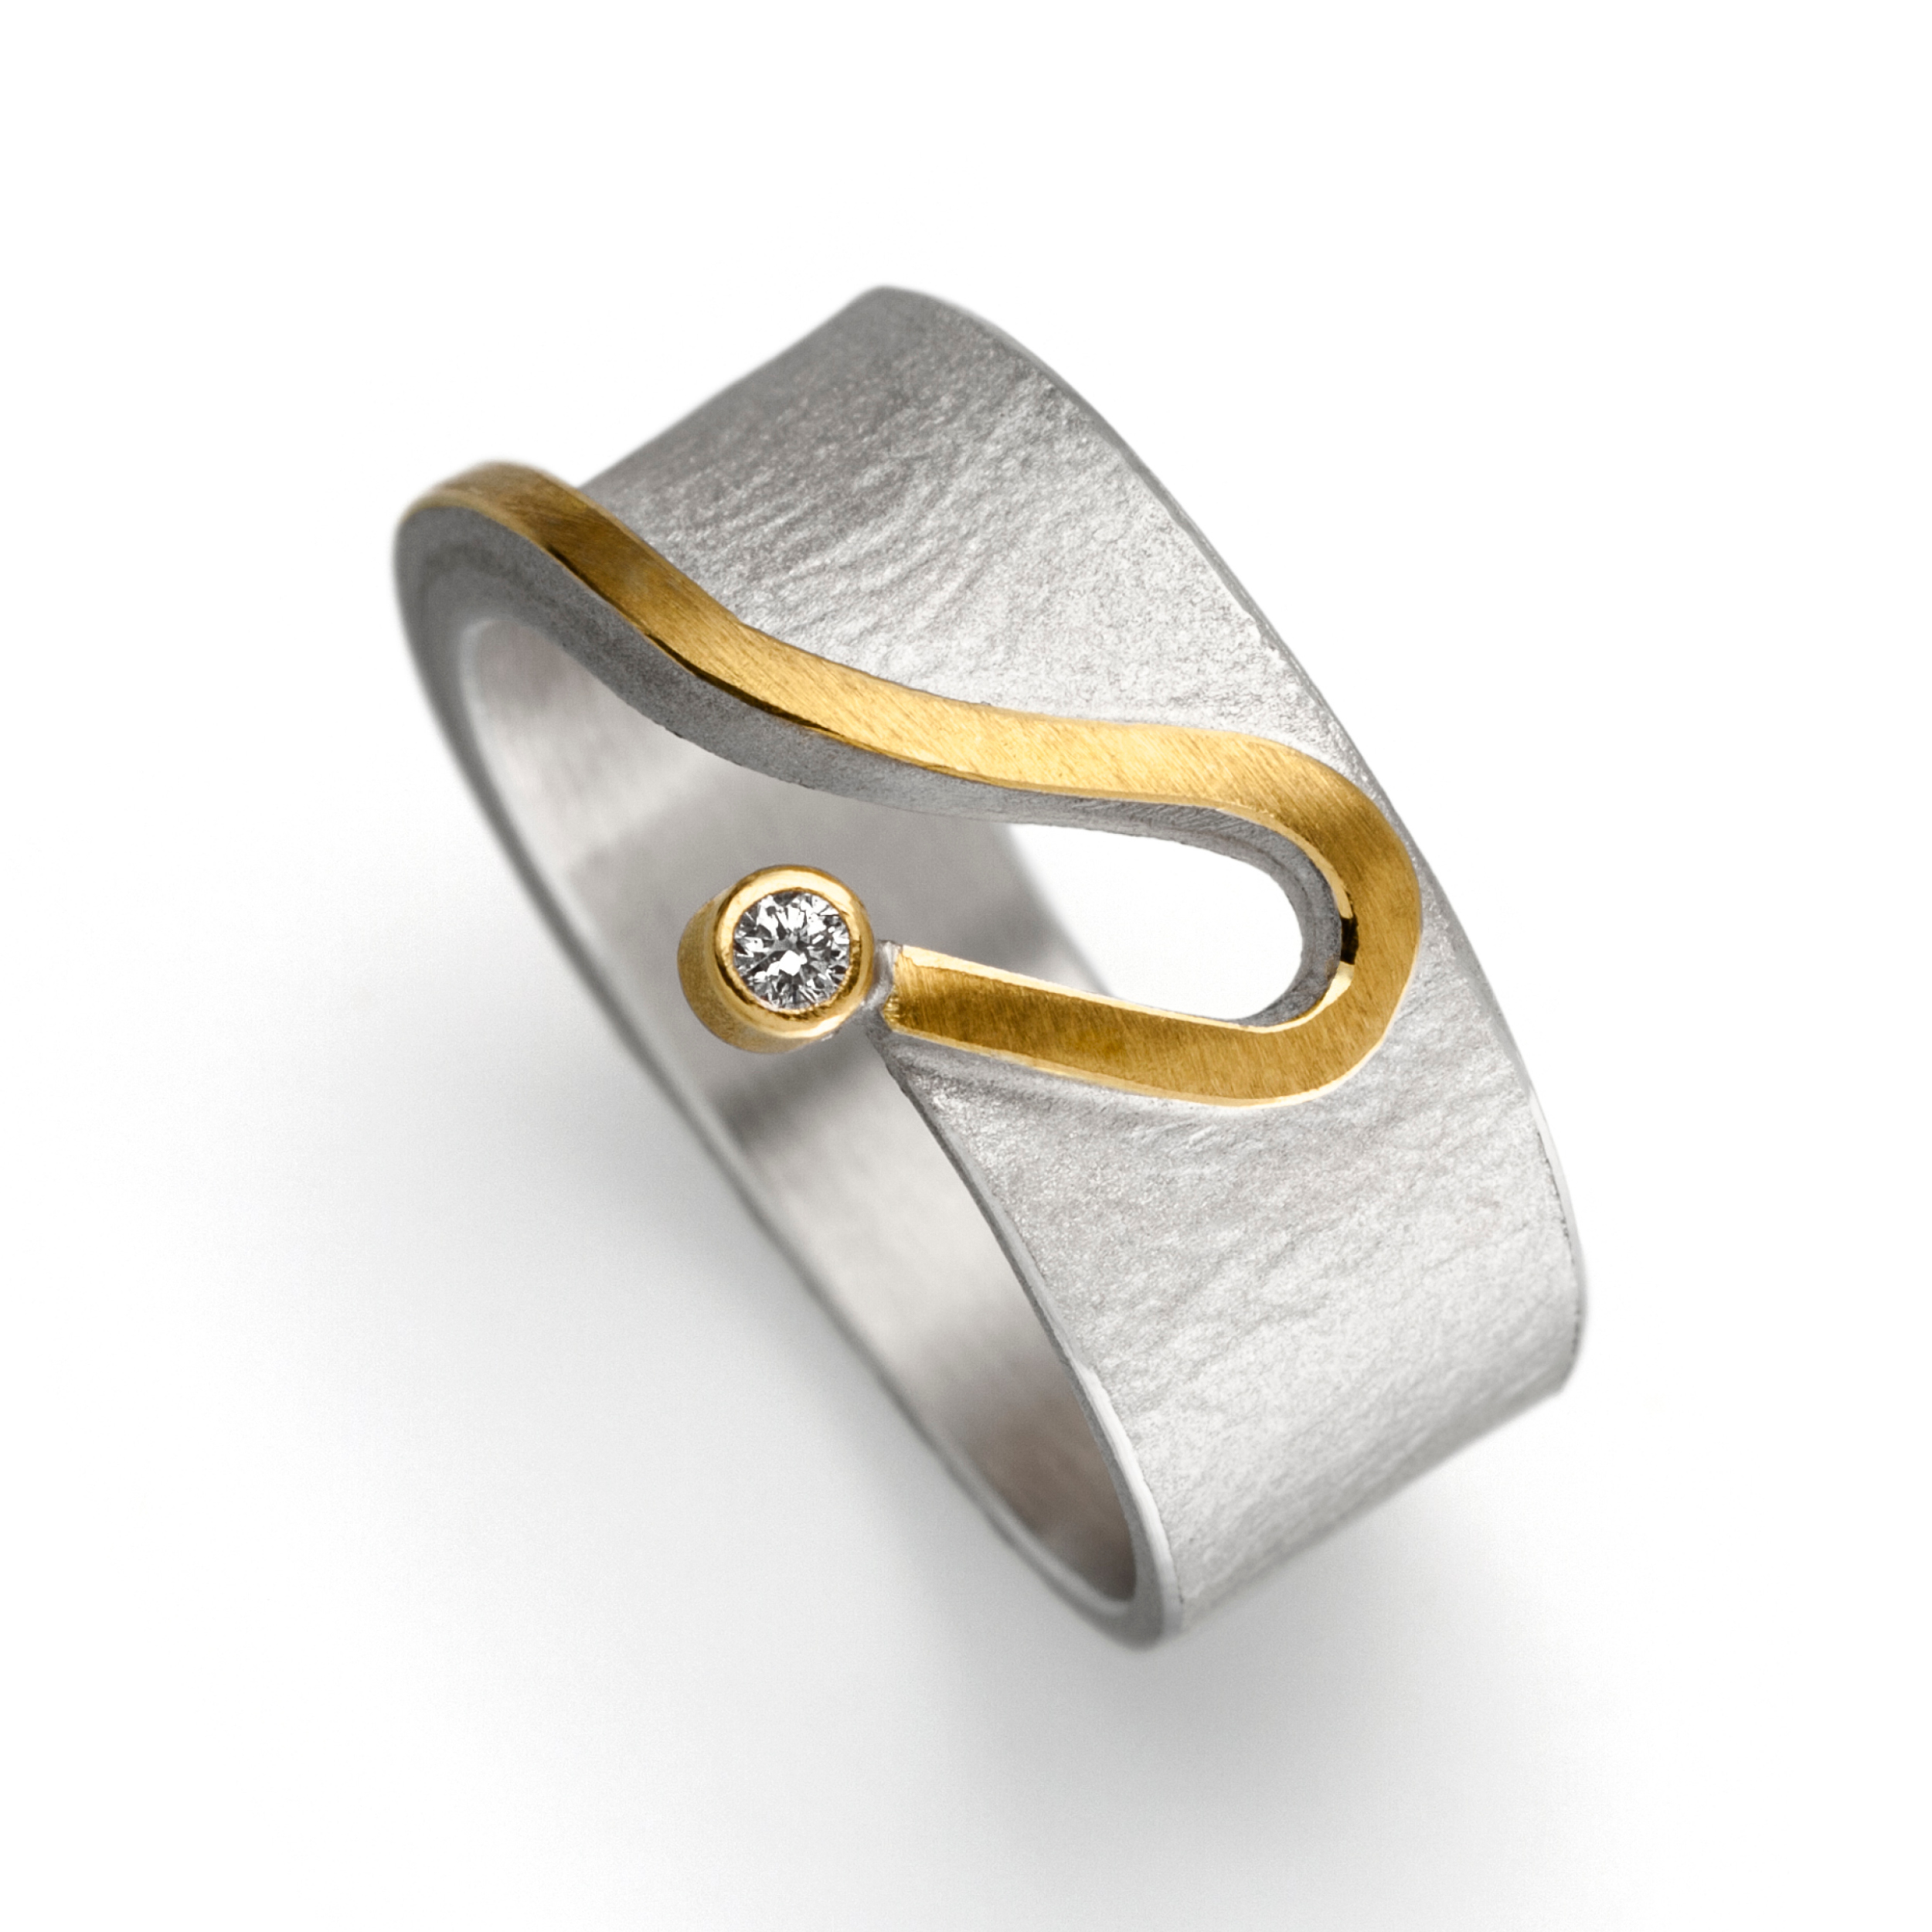 Jewellery by Manu - from Originals Jewellers & Gallery